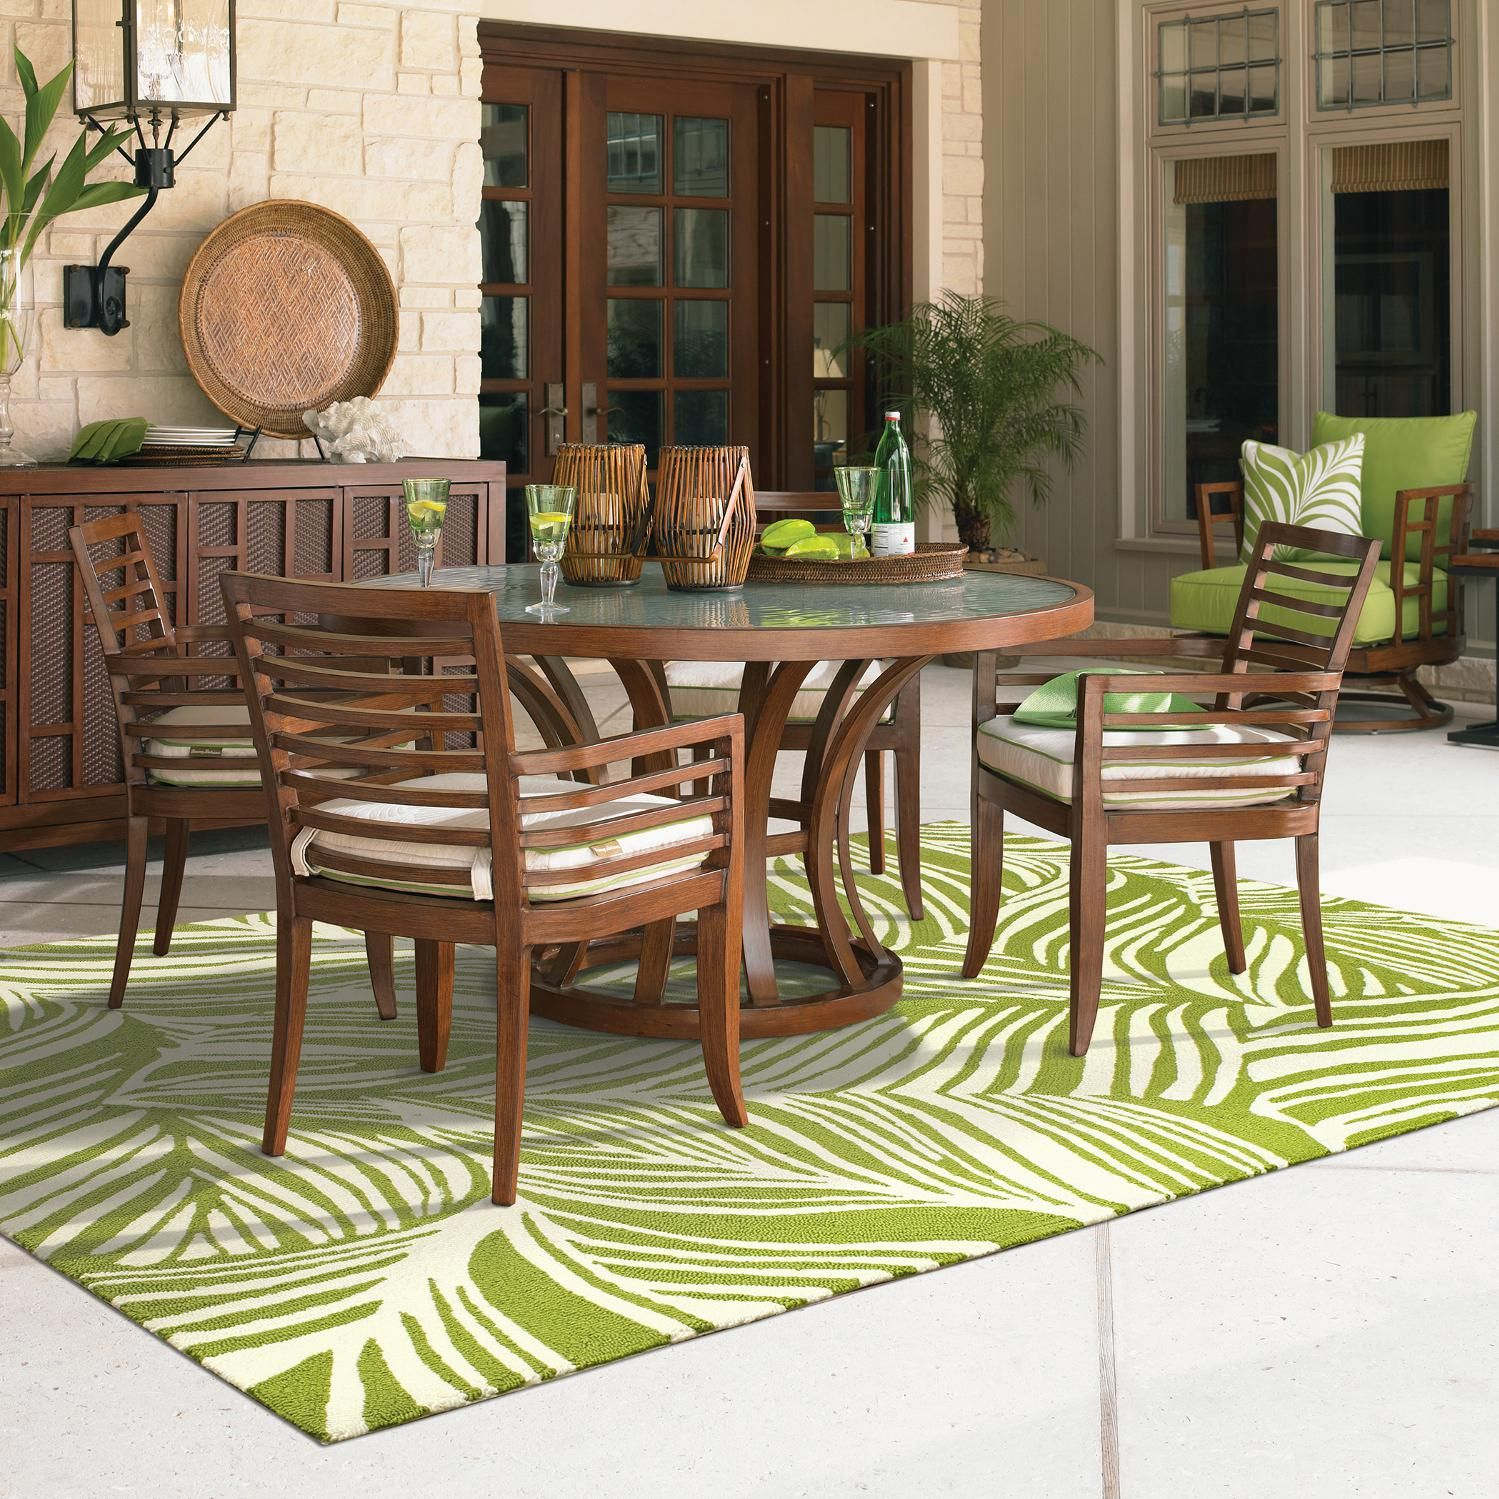 Tommy Bahama Ocean Club Pacifica 4 Person Aluminum Patio Dining